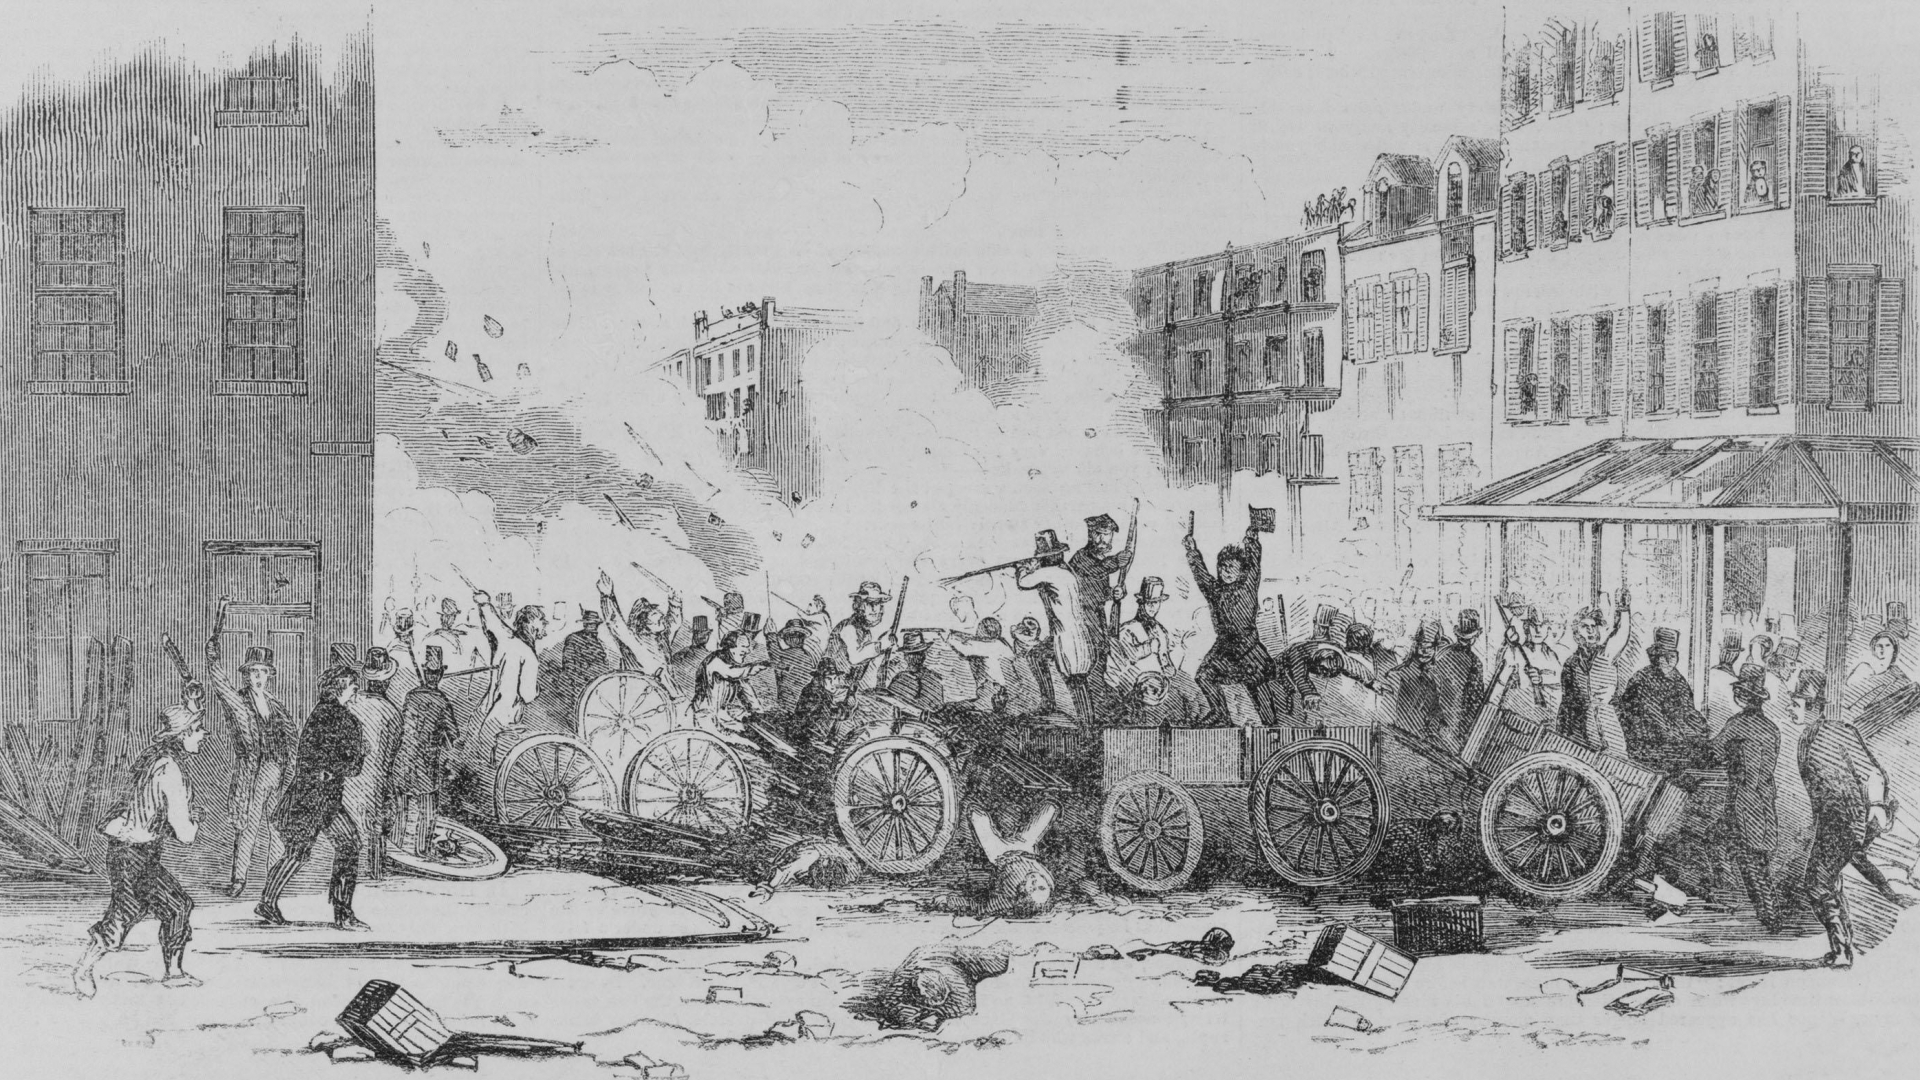 The battle on Bayard Street of the Irish gang, the 'Dead Rabbits,' against the Bowery Boys, a nativist, anti-Catholic and anti-Irish gang, New York, 1857. (Credit: Everett Collection Inc/Alamy Stock Photo)